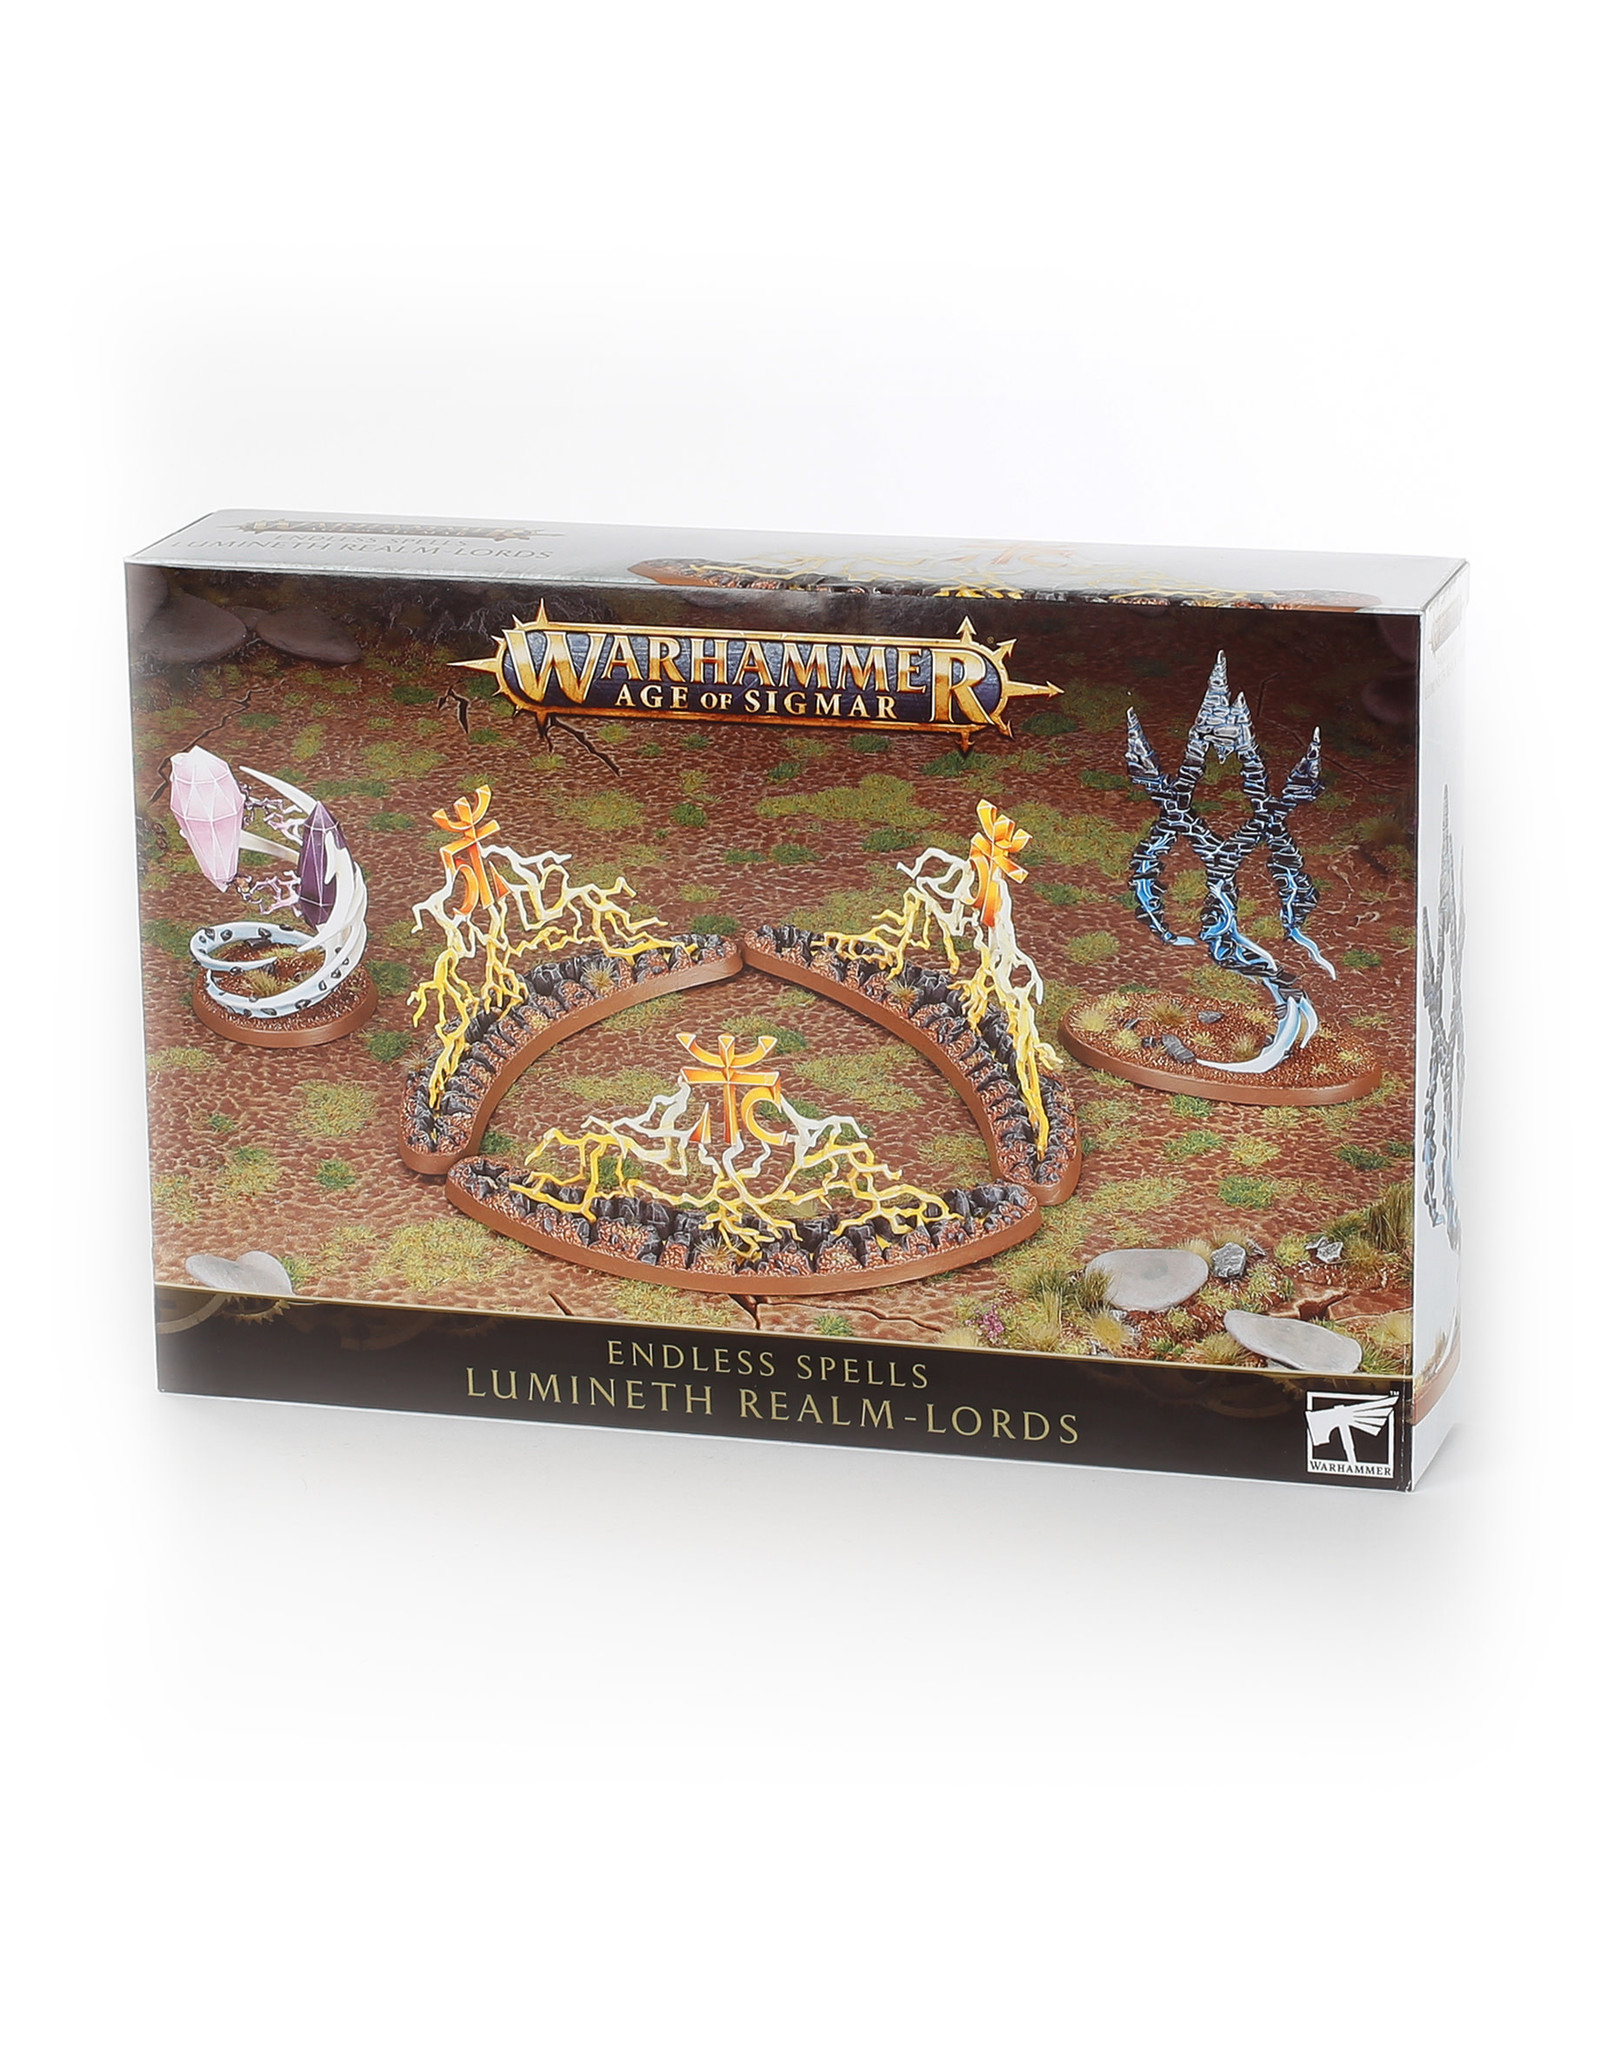 Games Workshop Endless Spells: Lumineth Realm-lords